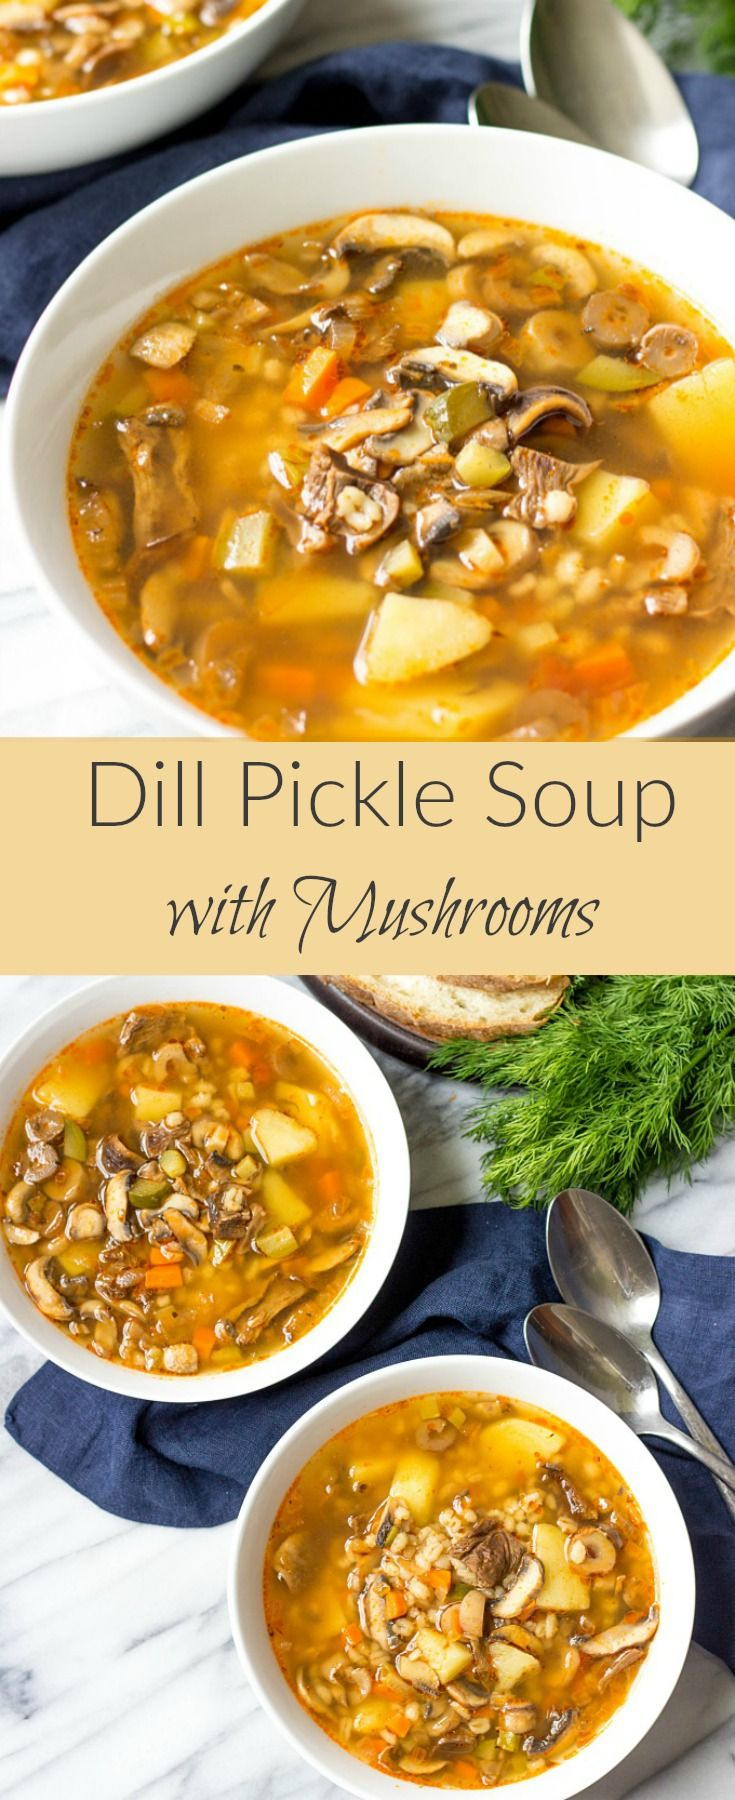 Dill Pickle Soup With Mushrooms